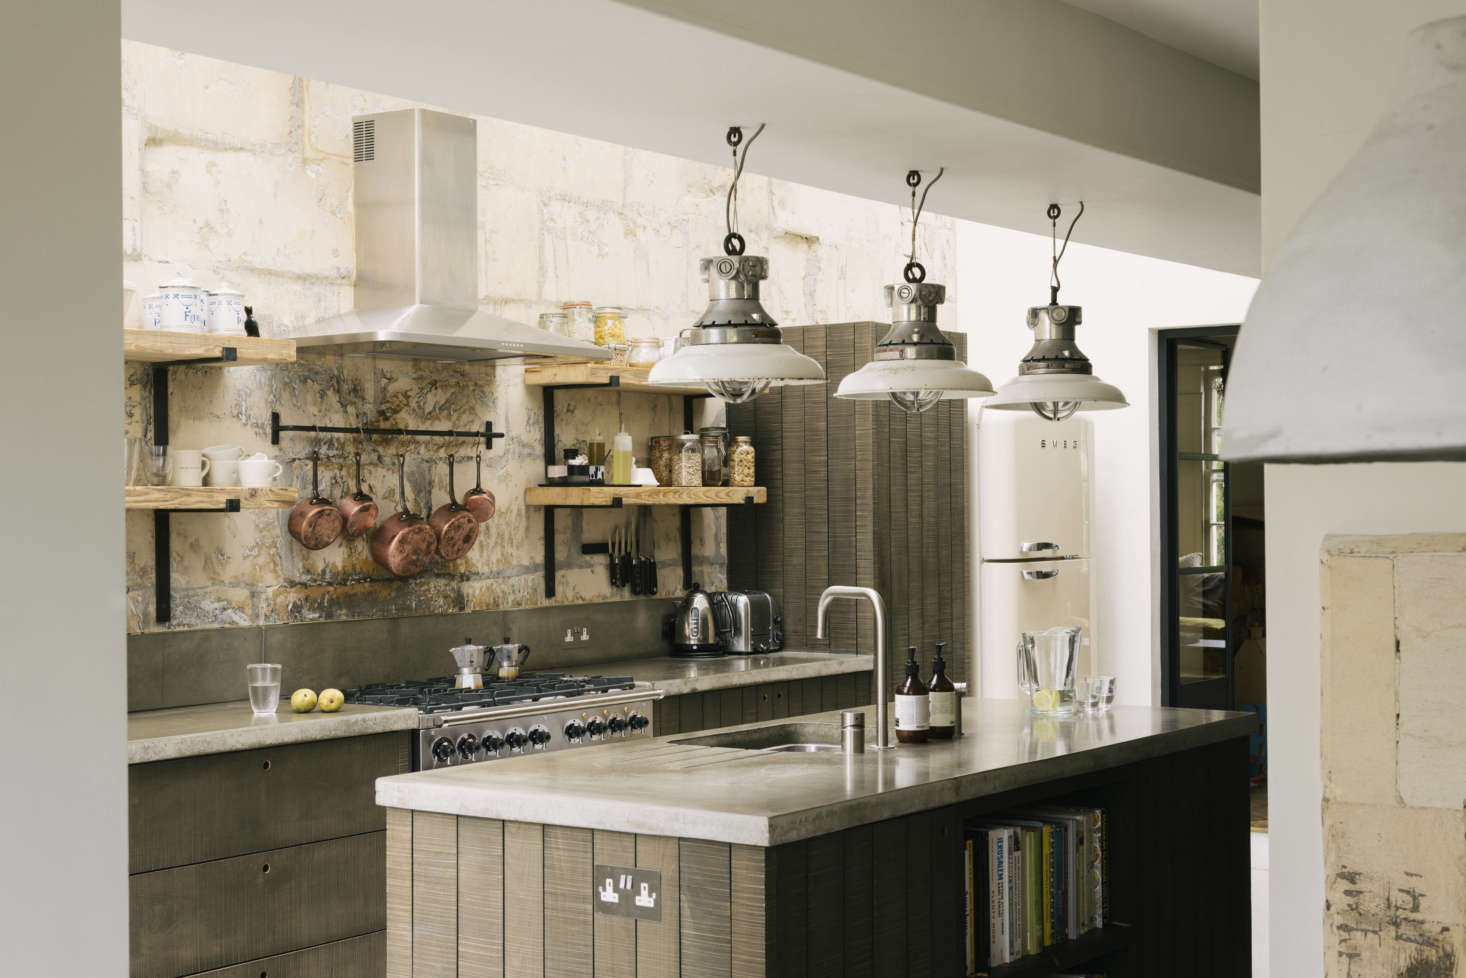 The trio of lights over the island are Vintage Appleton American Warship Enamel Pendants from Bath lighting dealer Felix. For similar rescued designs, see Reborn in the USA: Soviet Industrial Lighting from Fixt Electric.